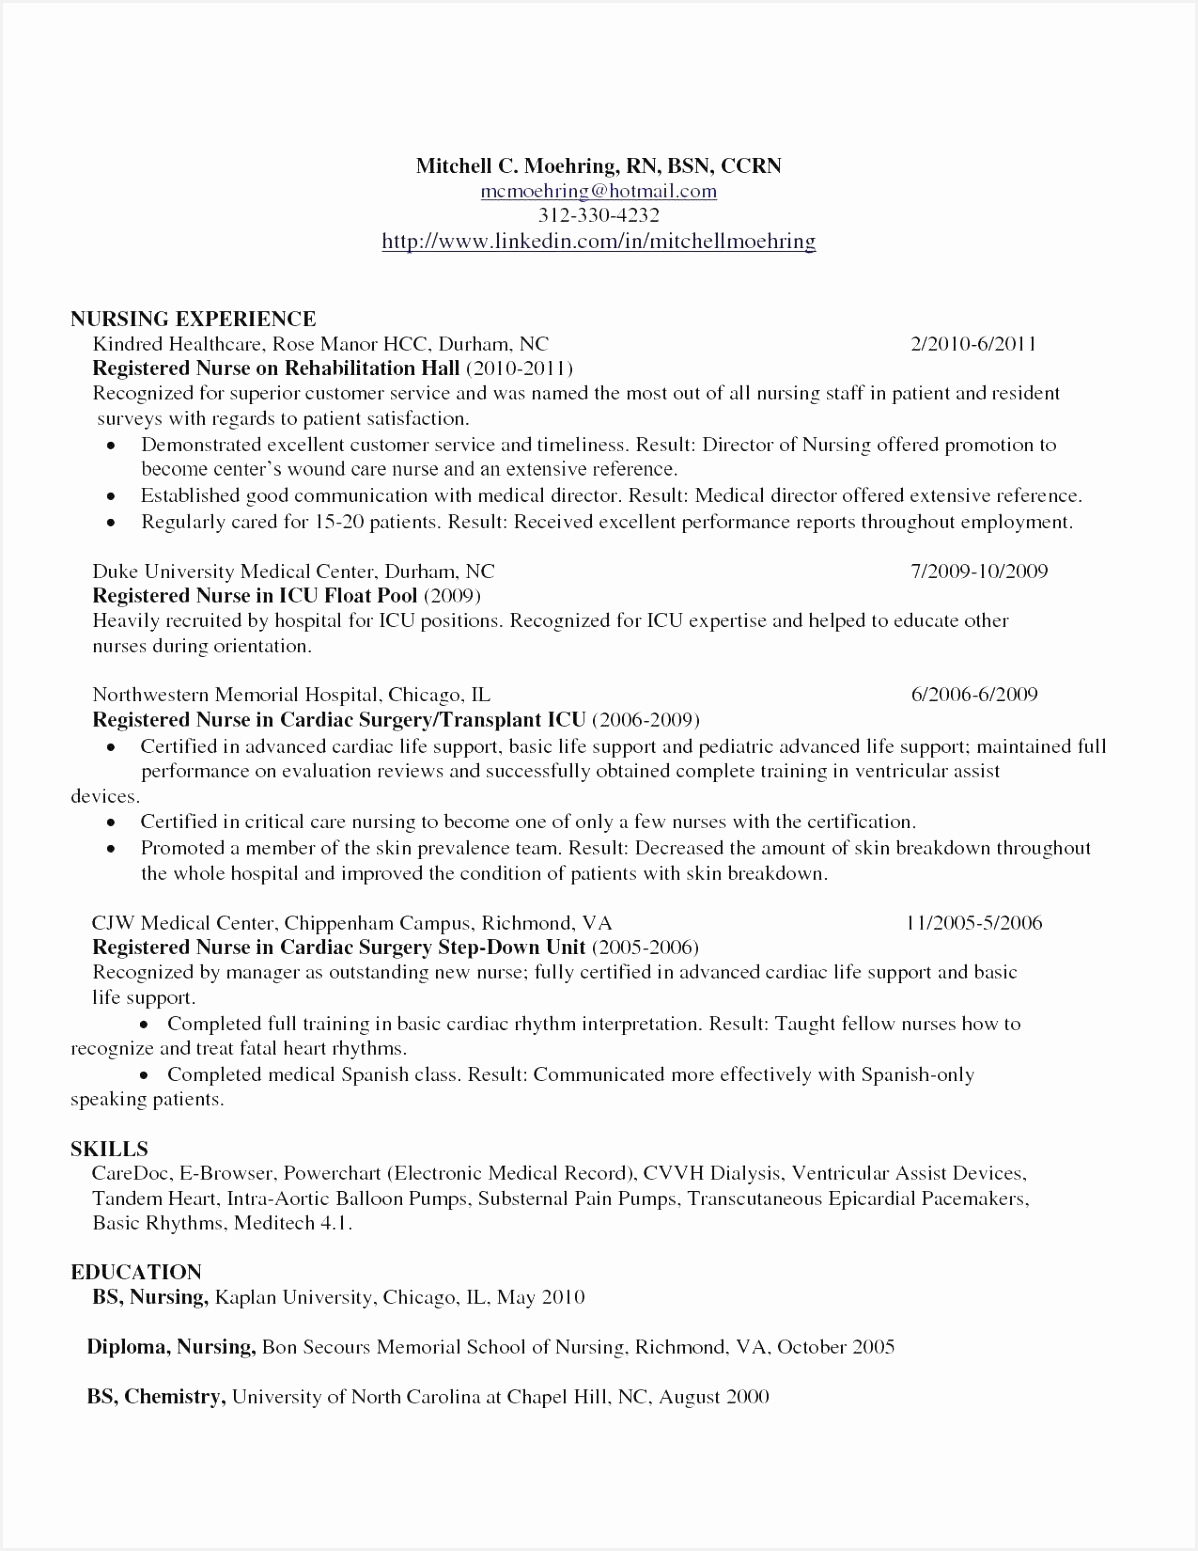 Nurse Graduate Resume Ysfhc Fresh 24 Rn New Graduate Resume Of Nurse Graduate Resume Esdac Awesome Nursing Student Resume Template Experienced Rn Resume Fresh Nurse